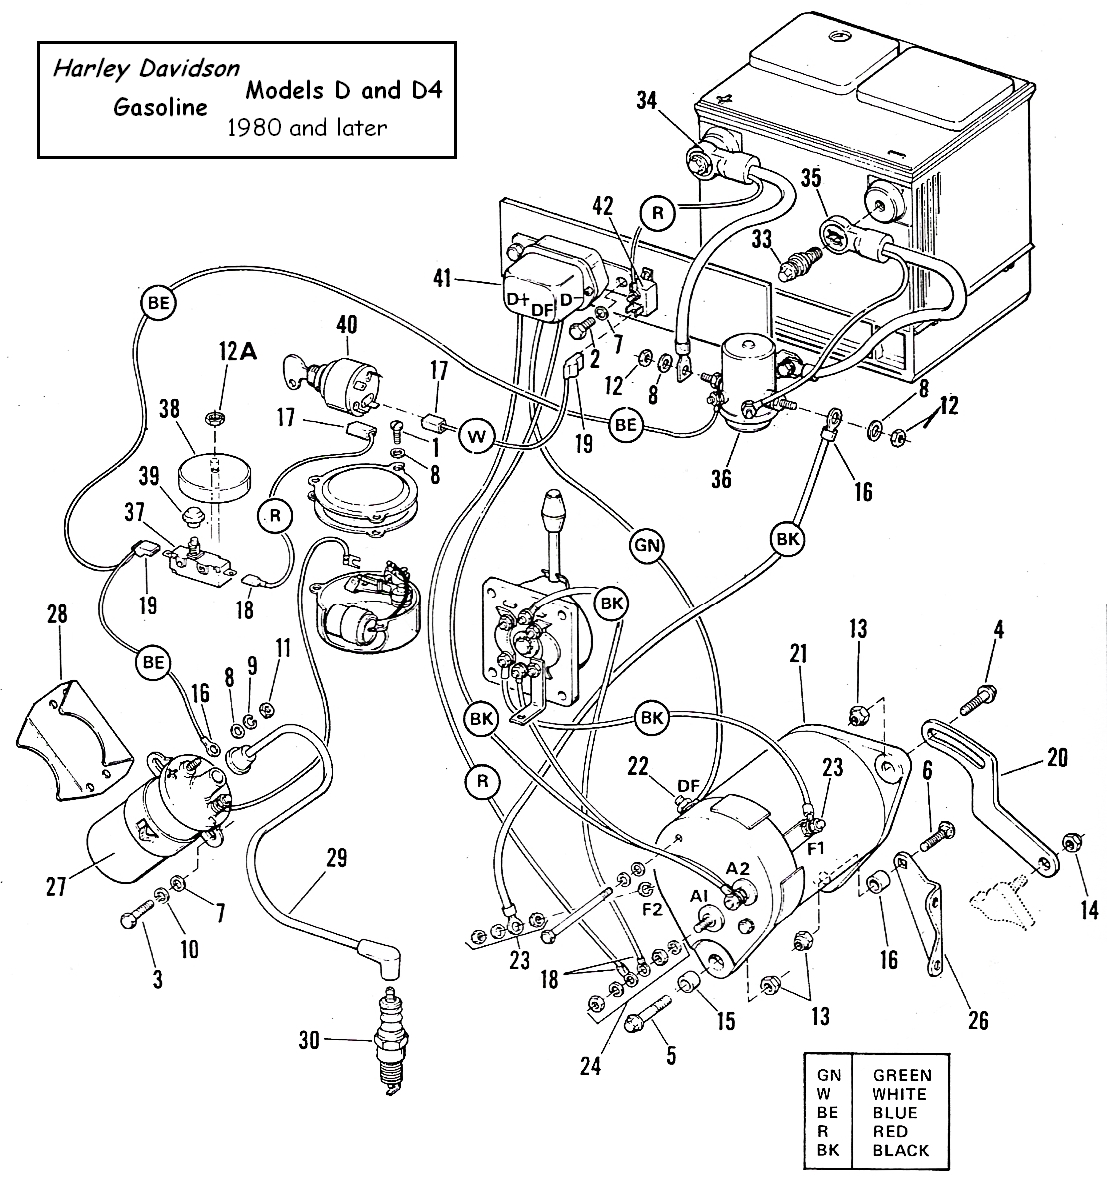 3e43f0 2010 Columbia Golf Cart 48v Wiring Diagram Wiring Resources